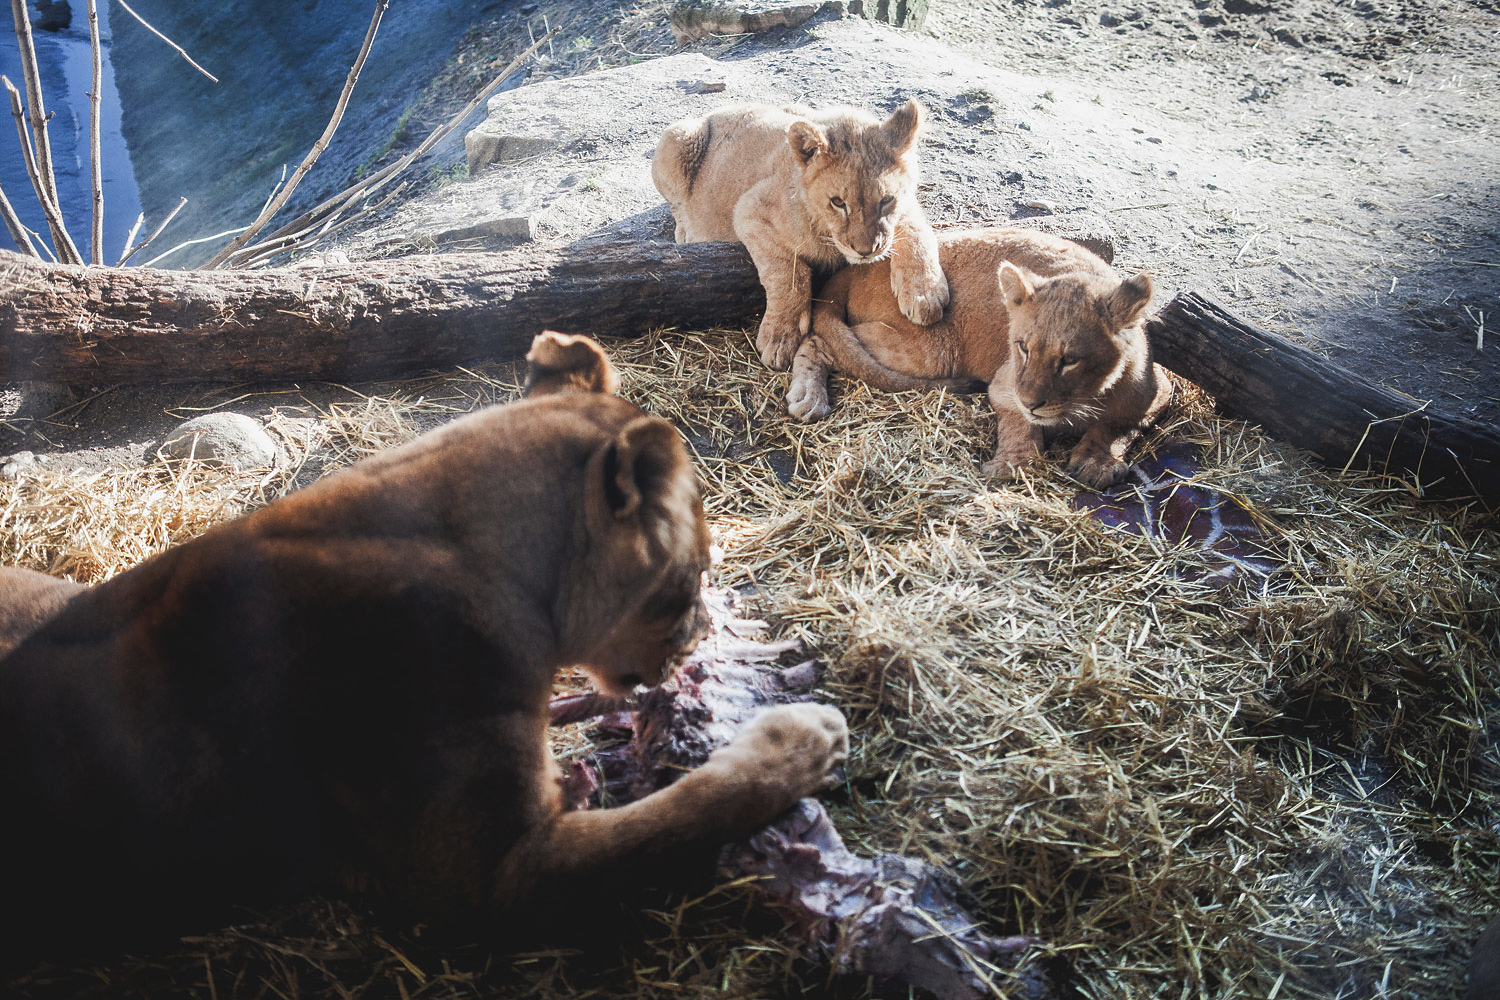 Copenhagen Zoo lions tuck into the remains of Marius the giraffe, Feb. 10, 2014.